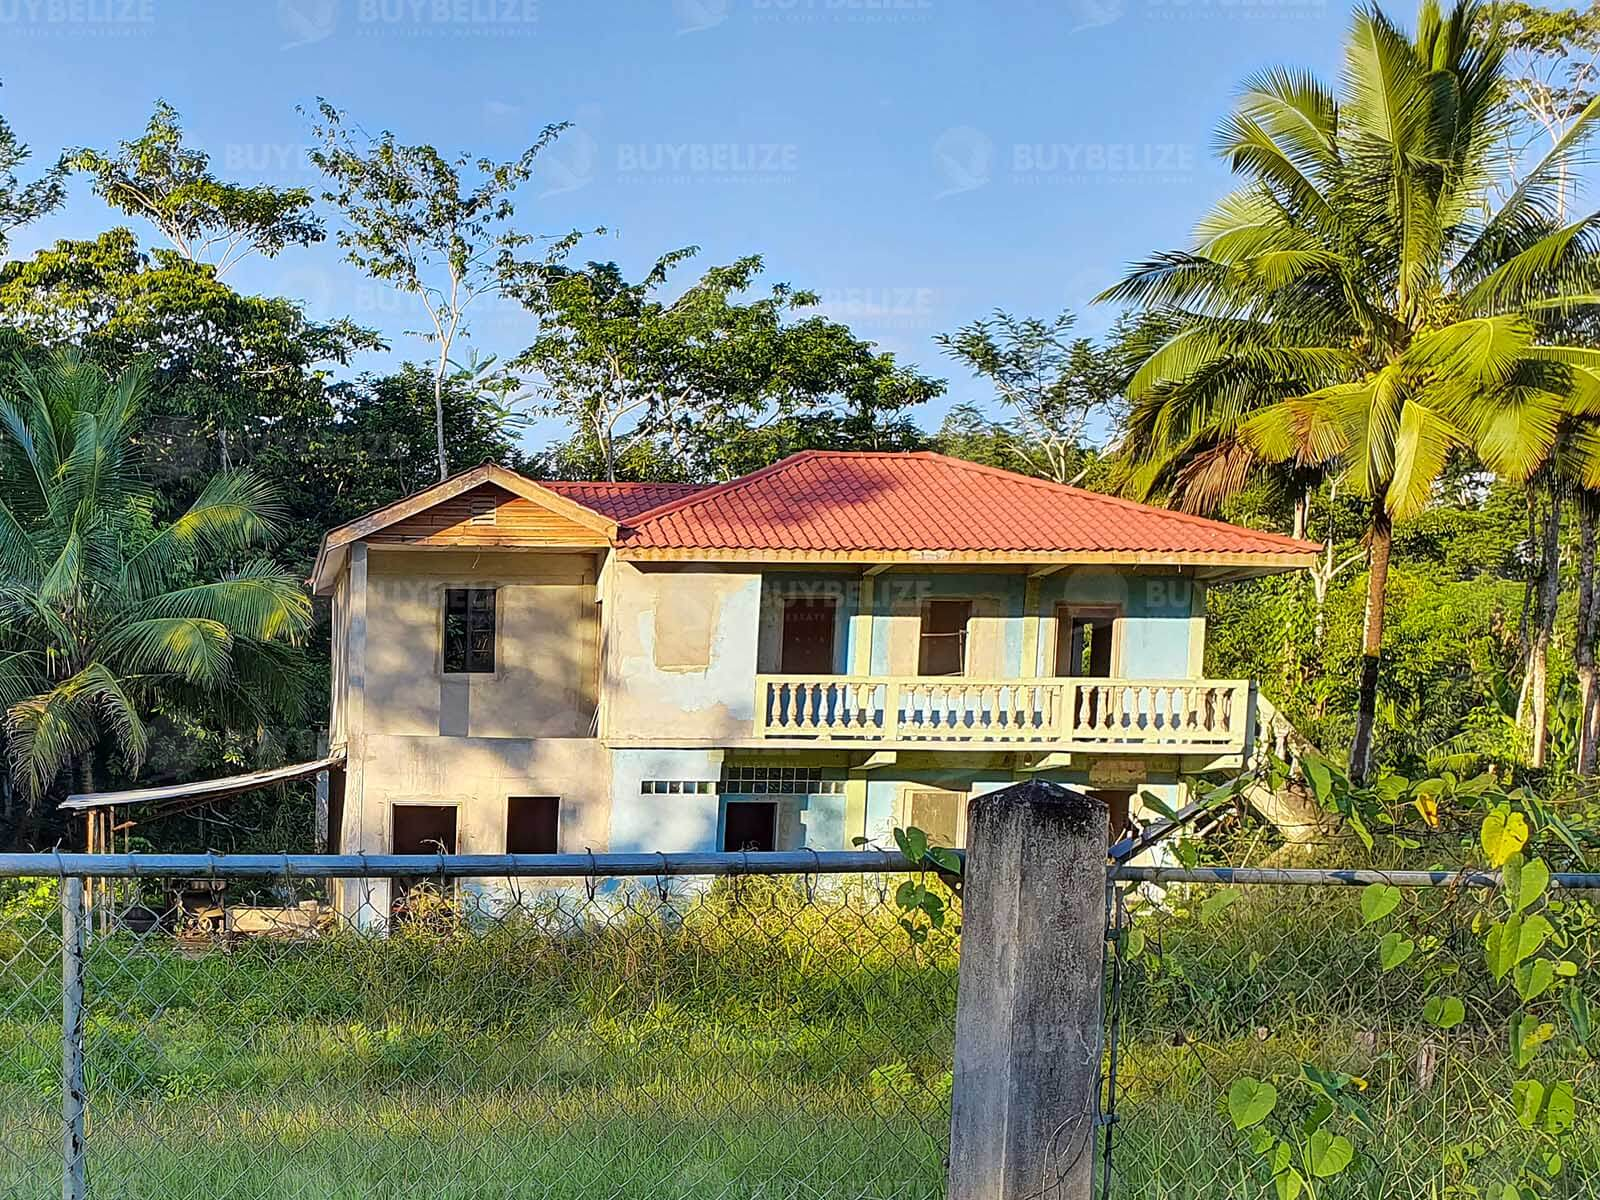 Near Complete House for Sale in Beautiful Rural Area in Toledo, Belize